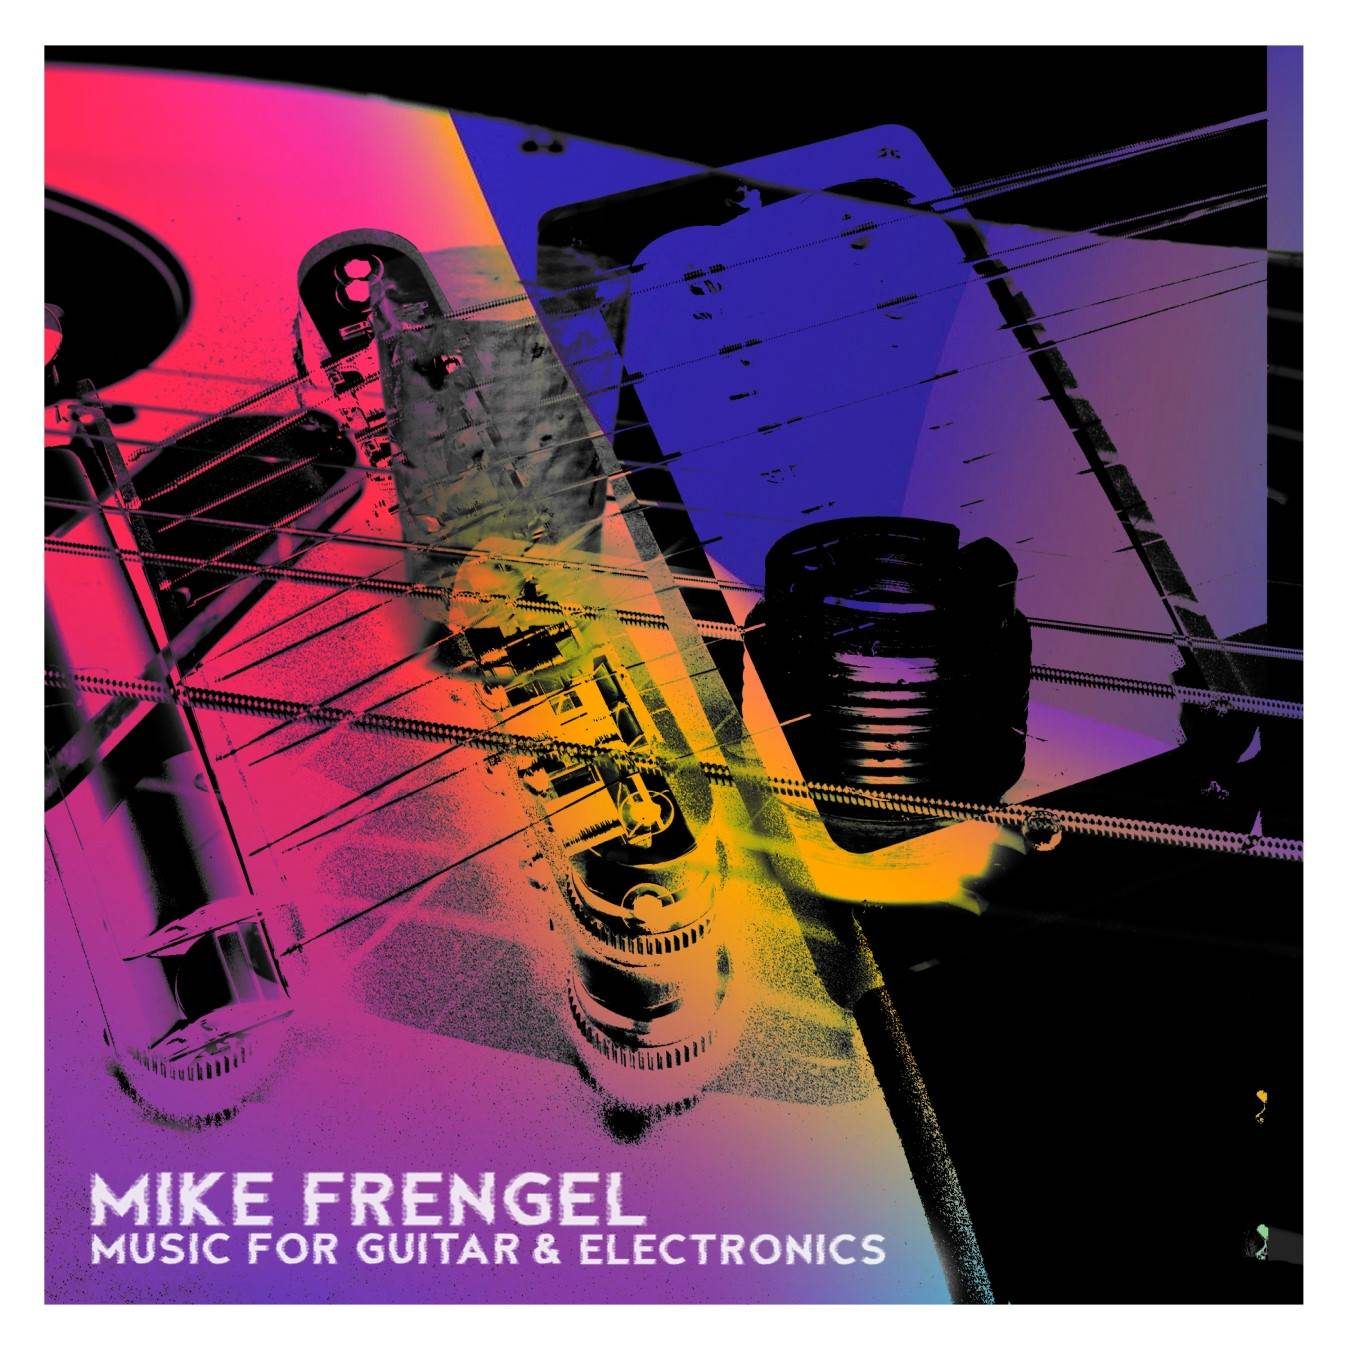 Music for Guitar and Electronics - Mike Frengel - Album Cover